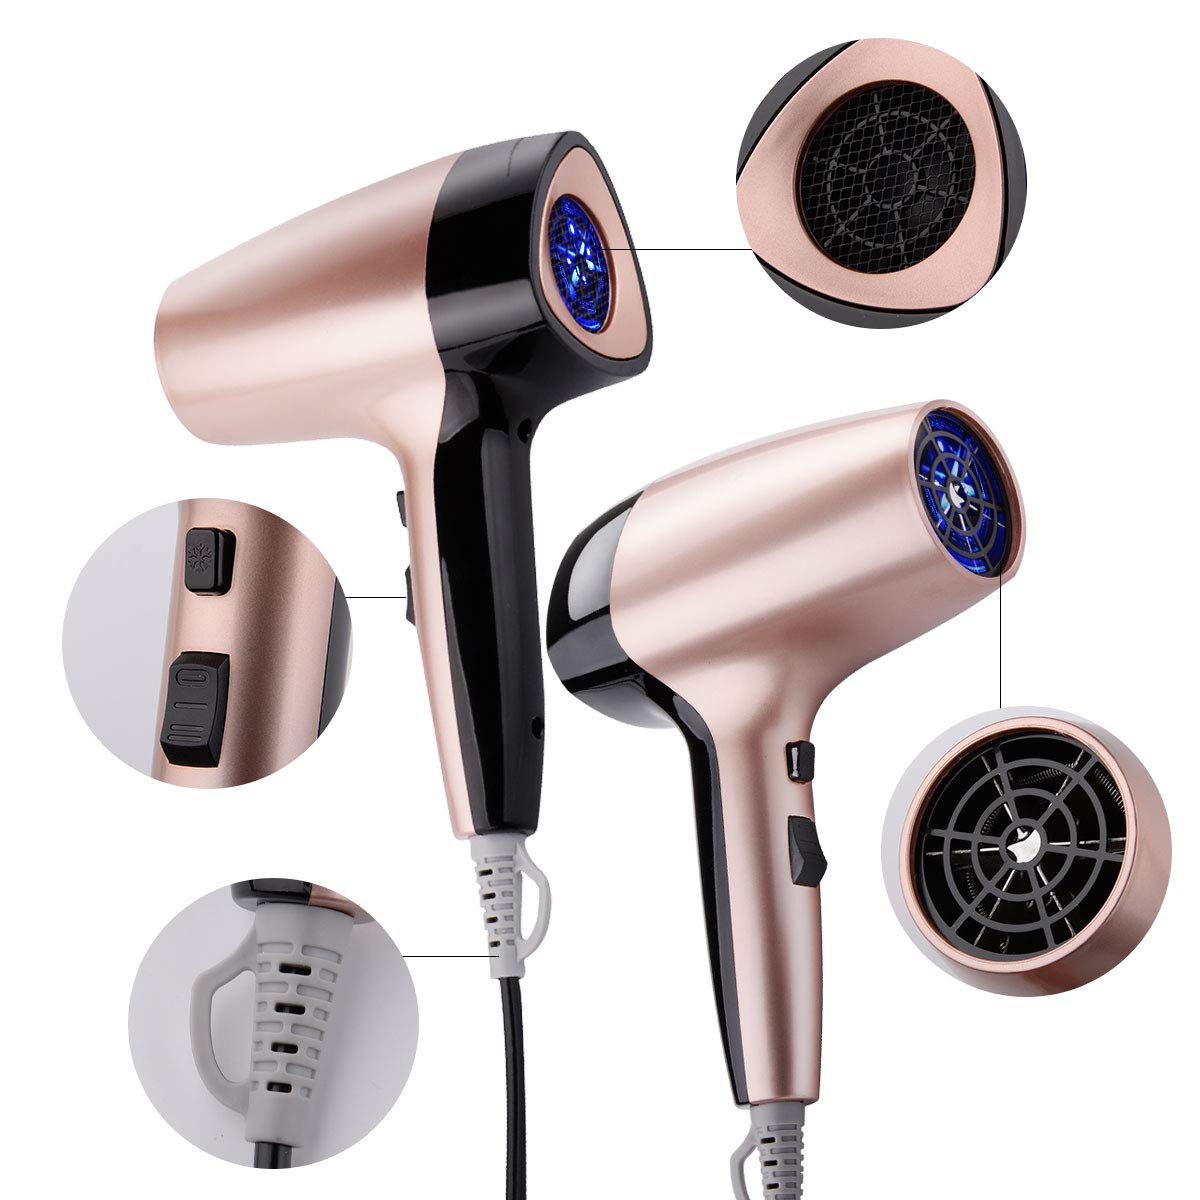 Travel Hair Dryer, Cosyonall 1600W Compact & Lightweight Portable Mini Hair Dryer, 2 Heat Setting Rose Gold Blow Dryer